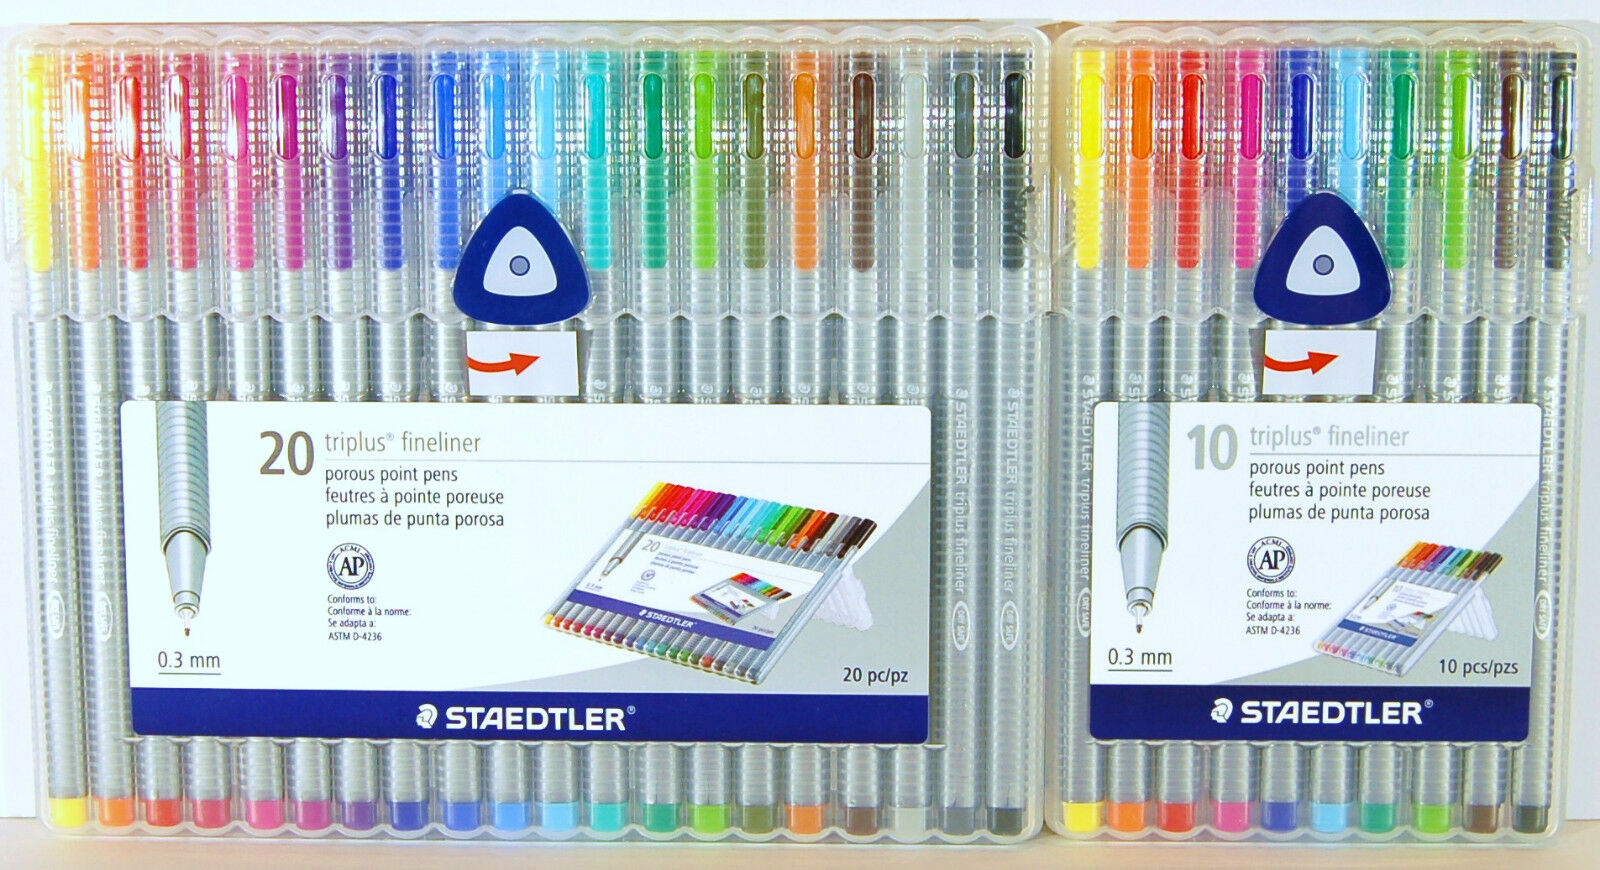 Box of 10 0.3 mm Ultramarine Blue Staedtler 334 Triplus Fineliner Superfine Point Pens